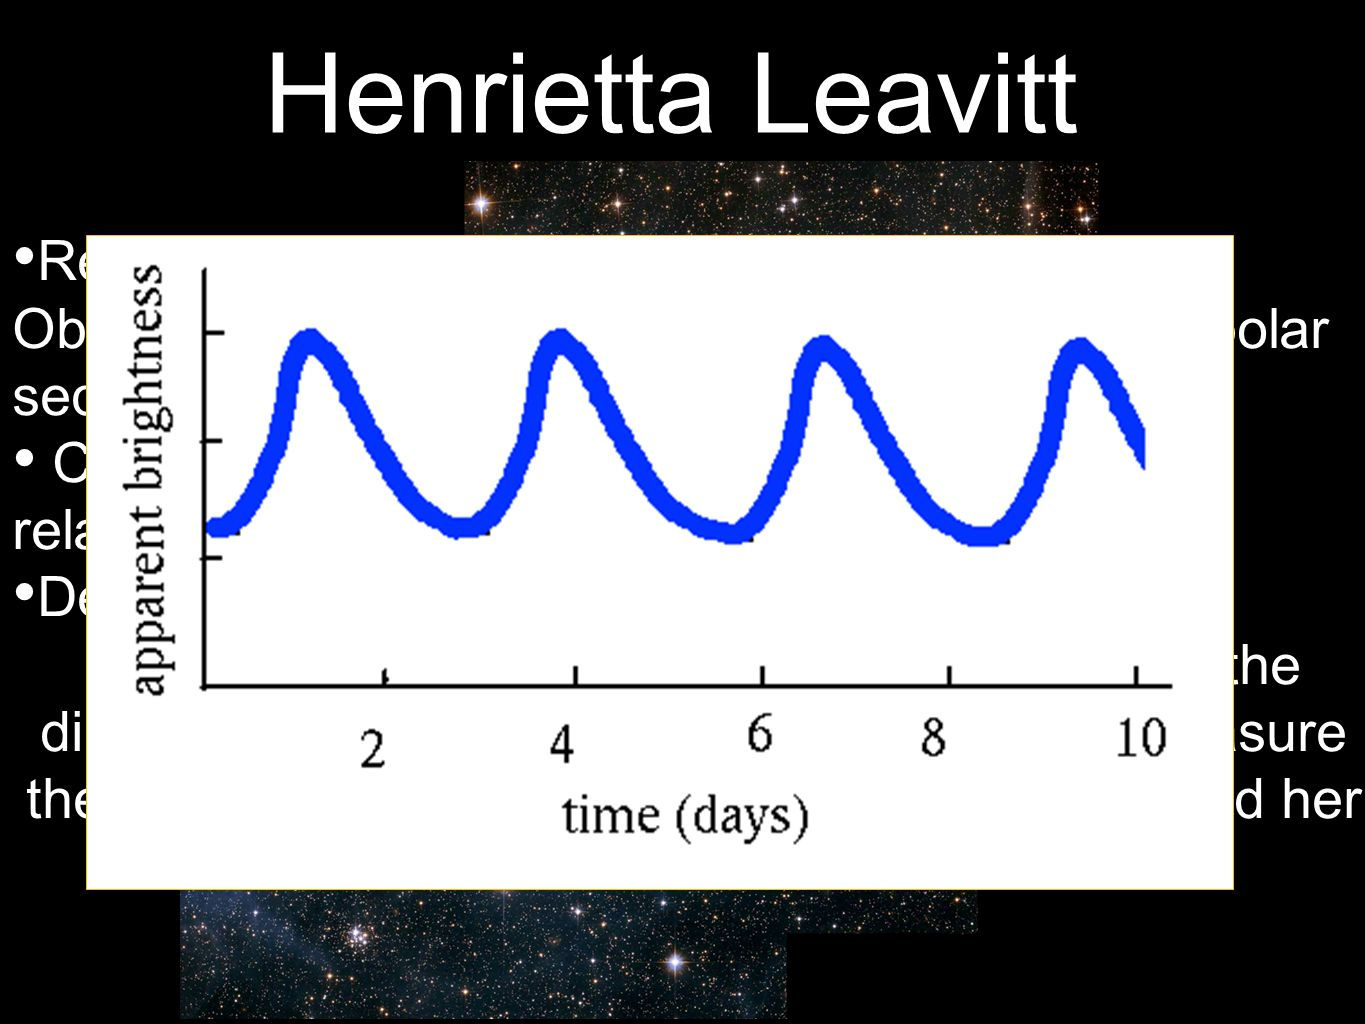 Henrietta Leavitt Research assistant at Harvard College Observatory.Devised a system, using the north polar sequence as a gage of brightness for stars Cepheid variables in SMC – period-luminosity relationship of these variables, Determine distances of stars Ejnar Hertzsprung used her discovery to plot the distance of stars; Harlow Shapley used it to measure the size of the Milky Way; and Edwin Hubble used her work to ascertain the age of the Universe.